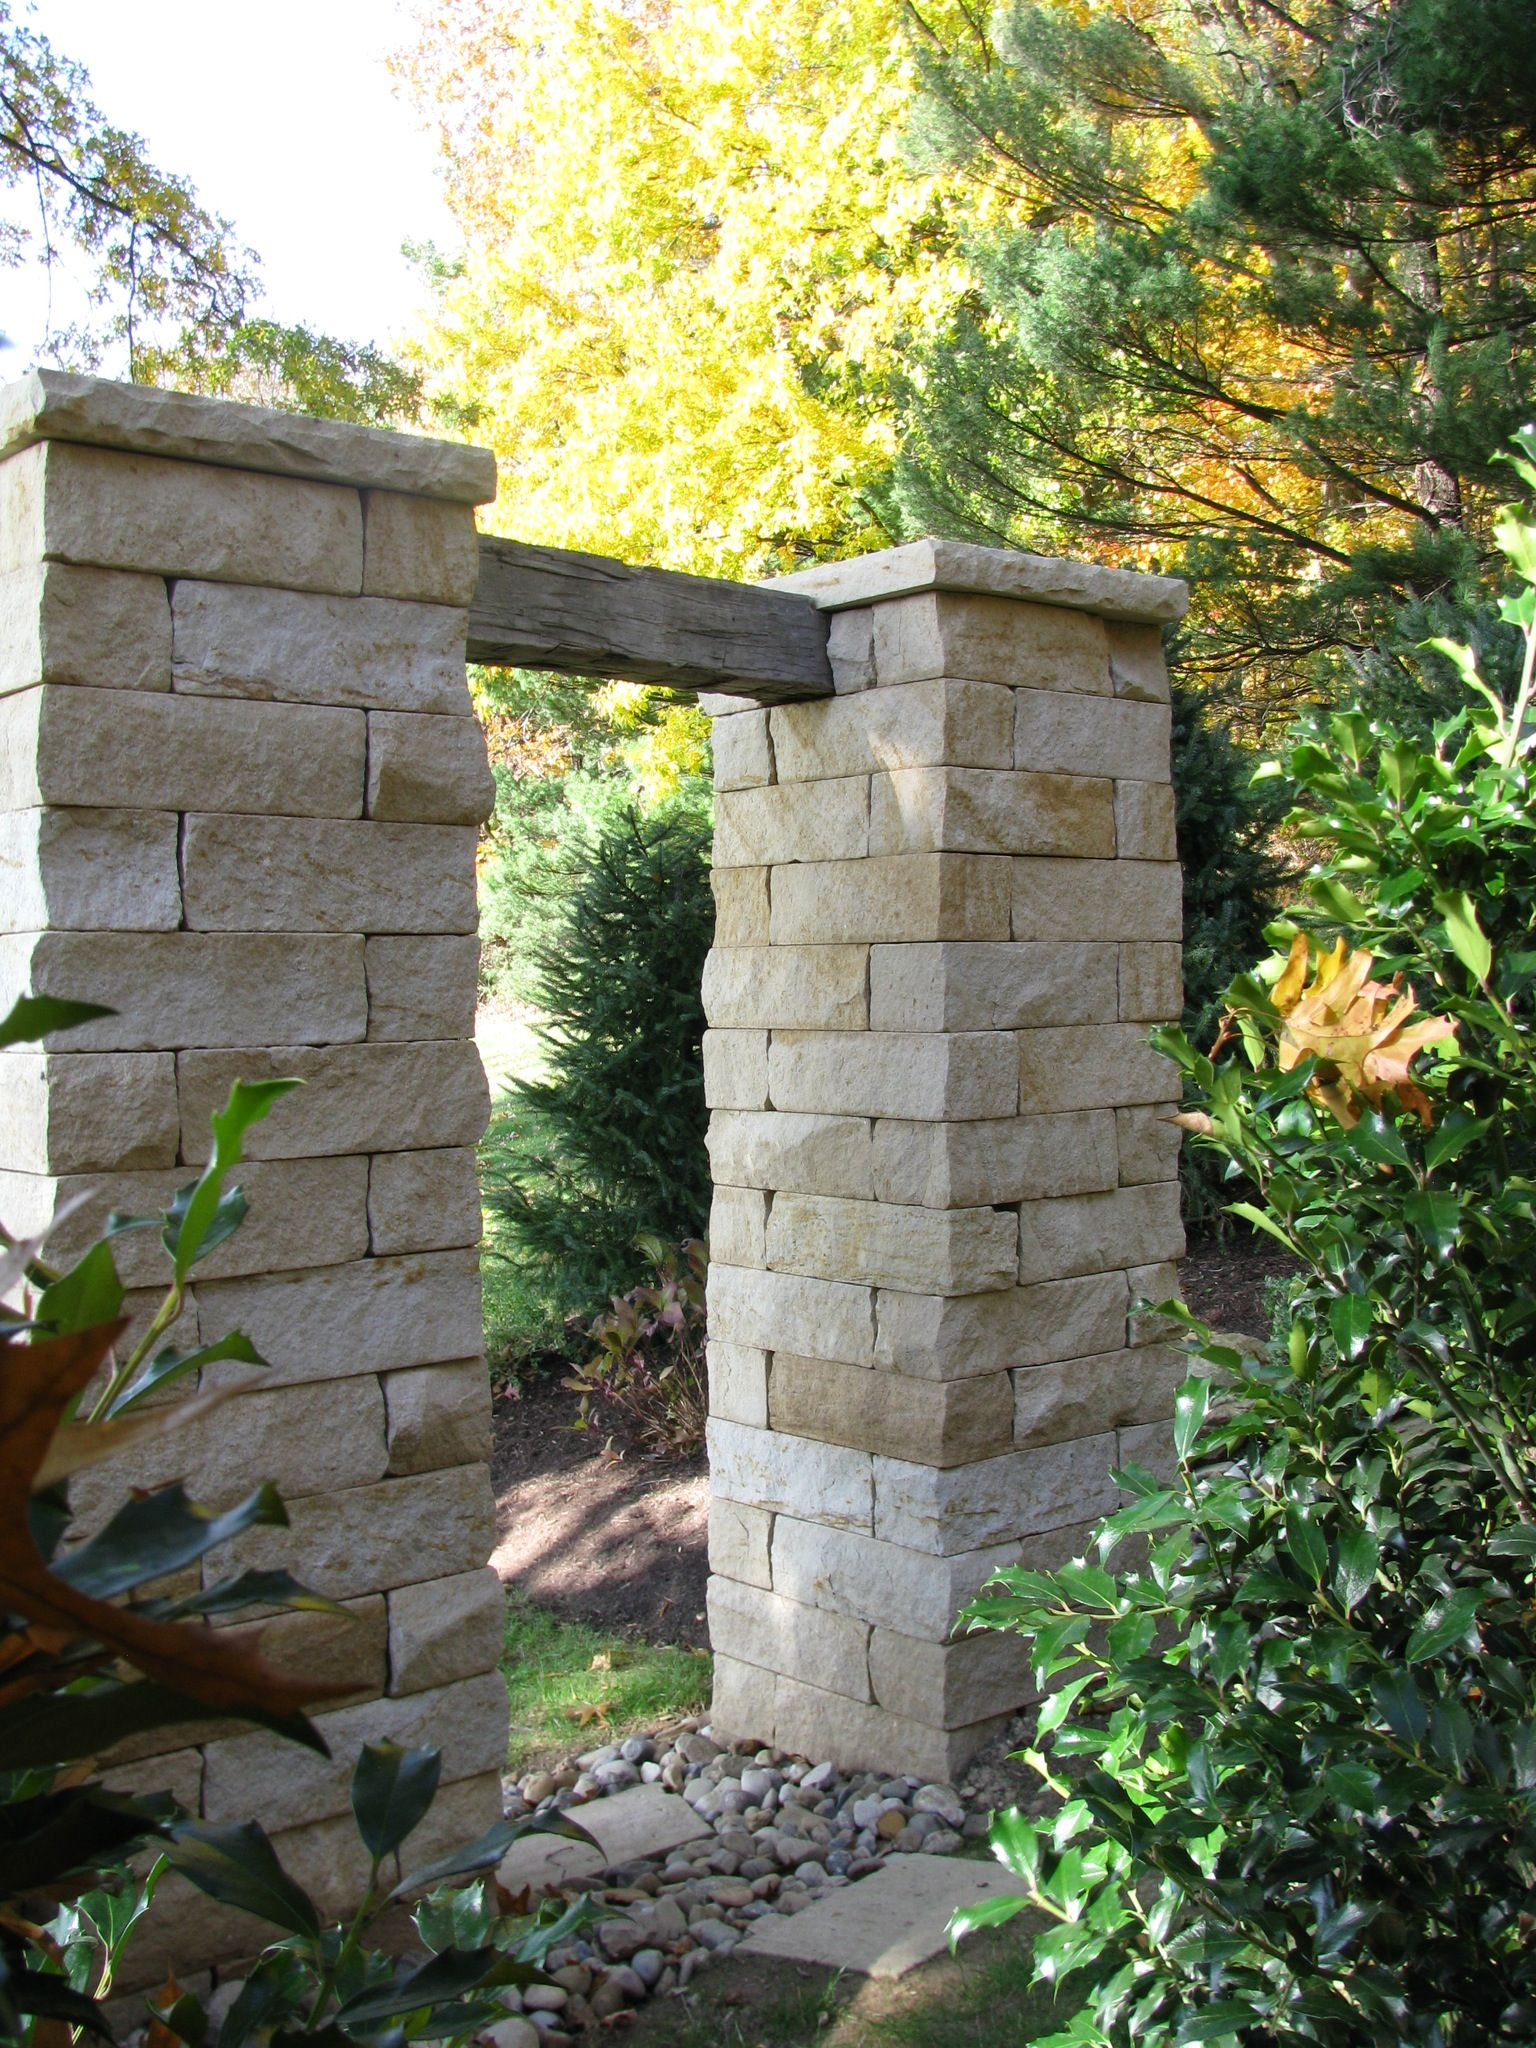 wrought iron fence and gates with sandstone pillars